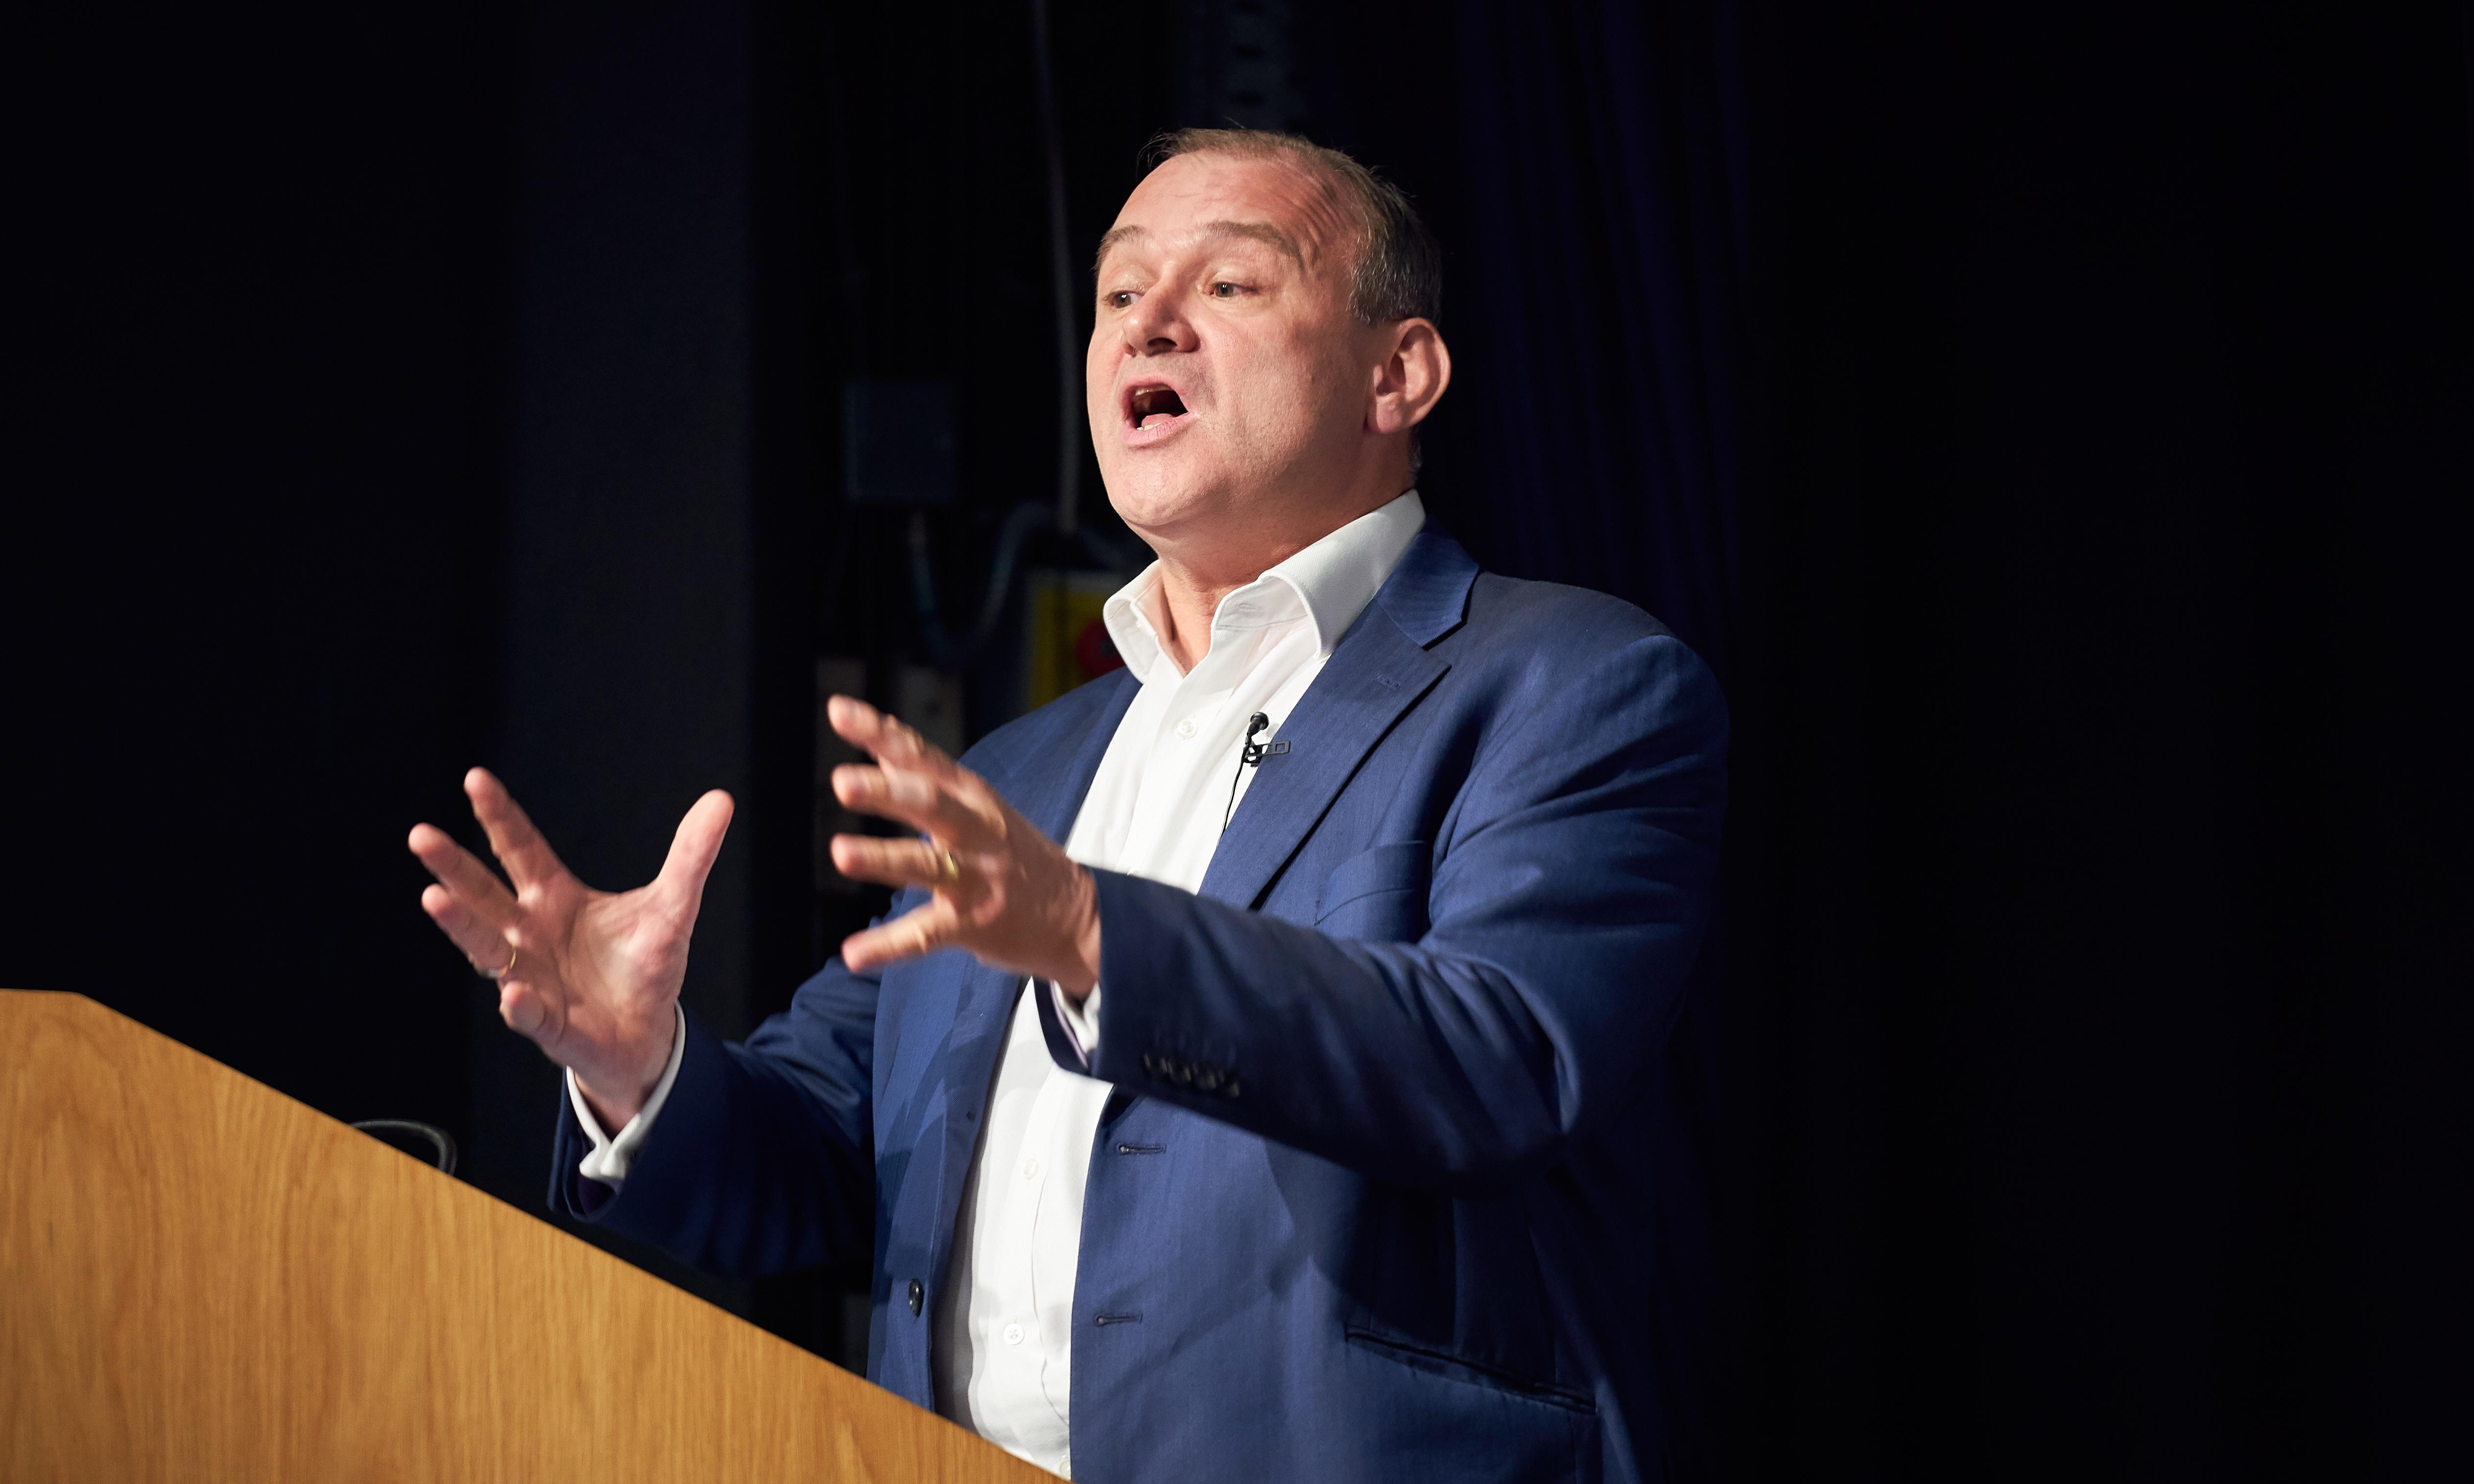 Lib Dem Ed Davey apologises for 'decapitate' comment